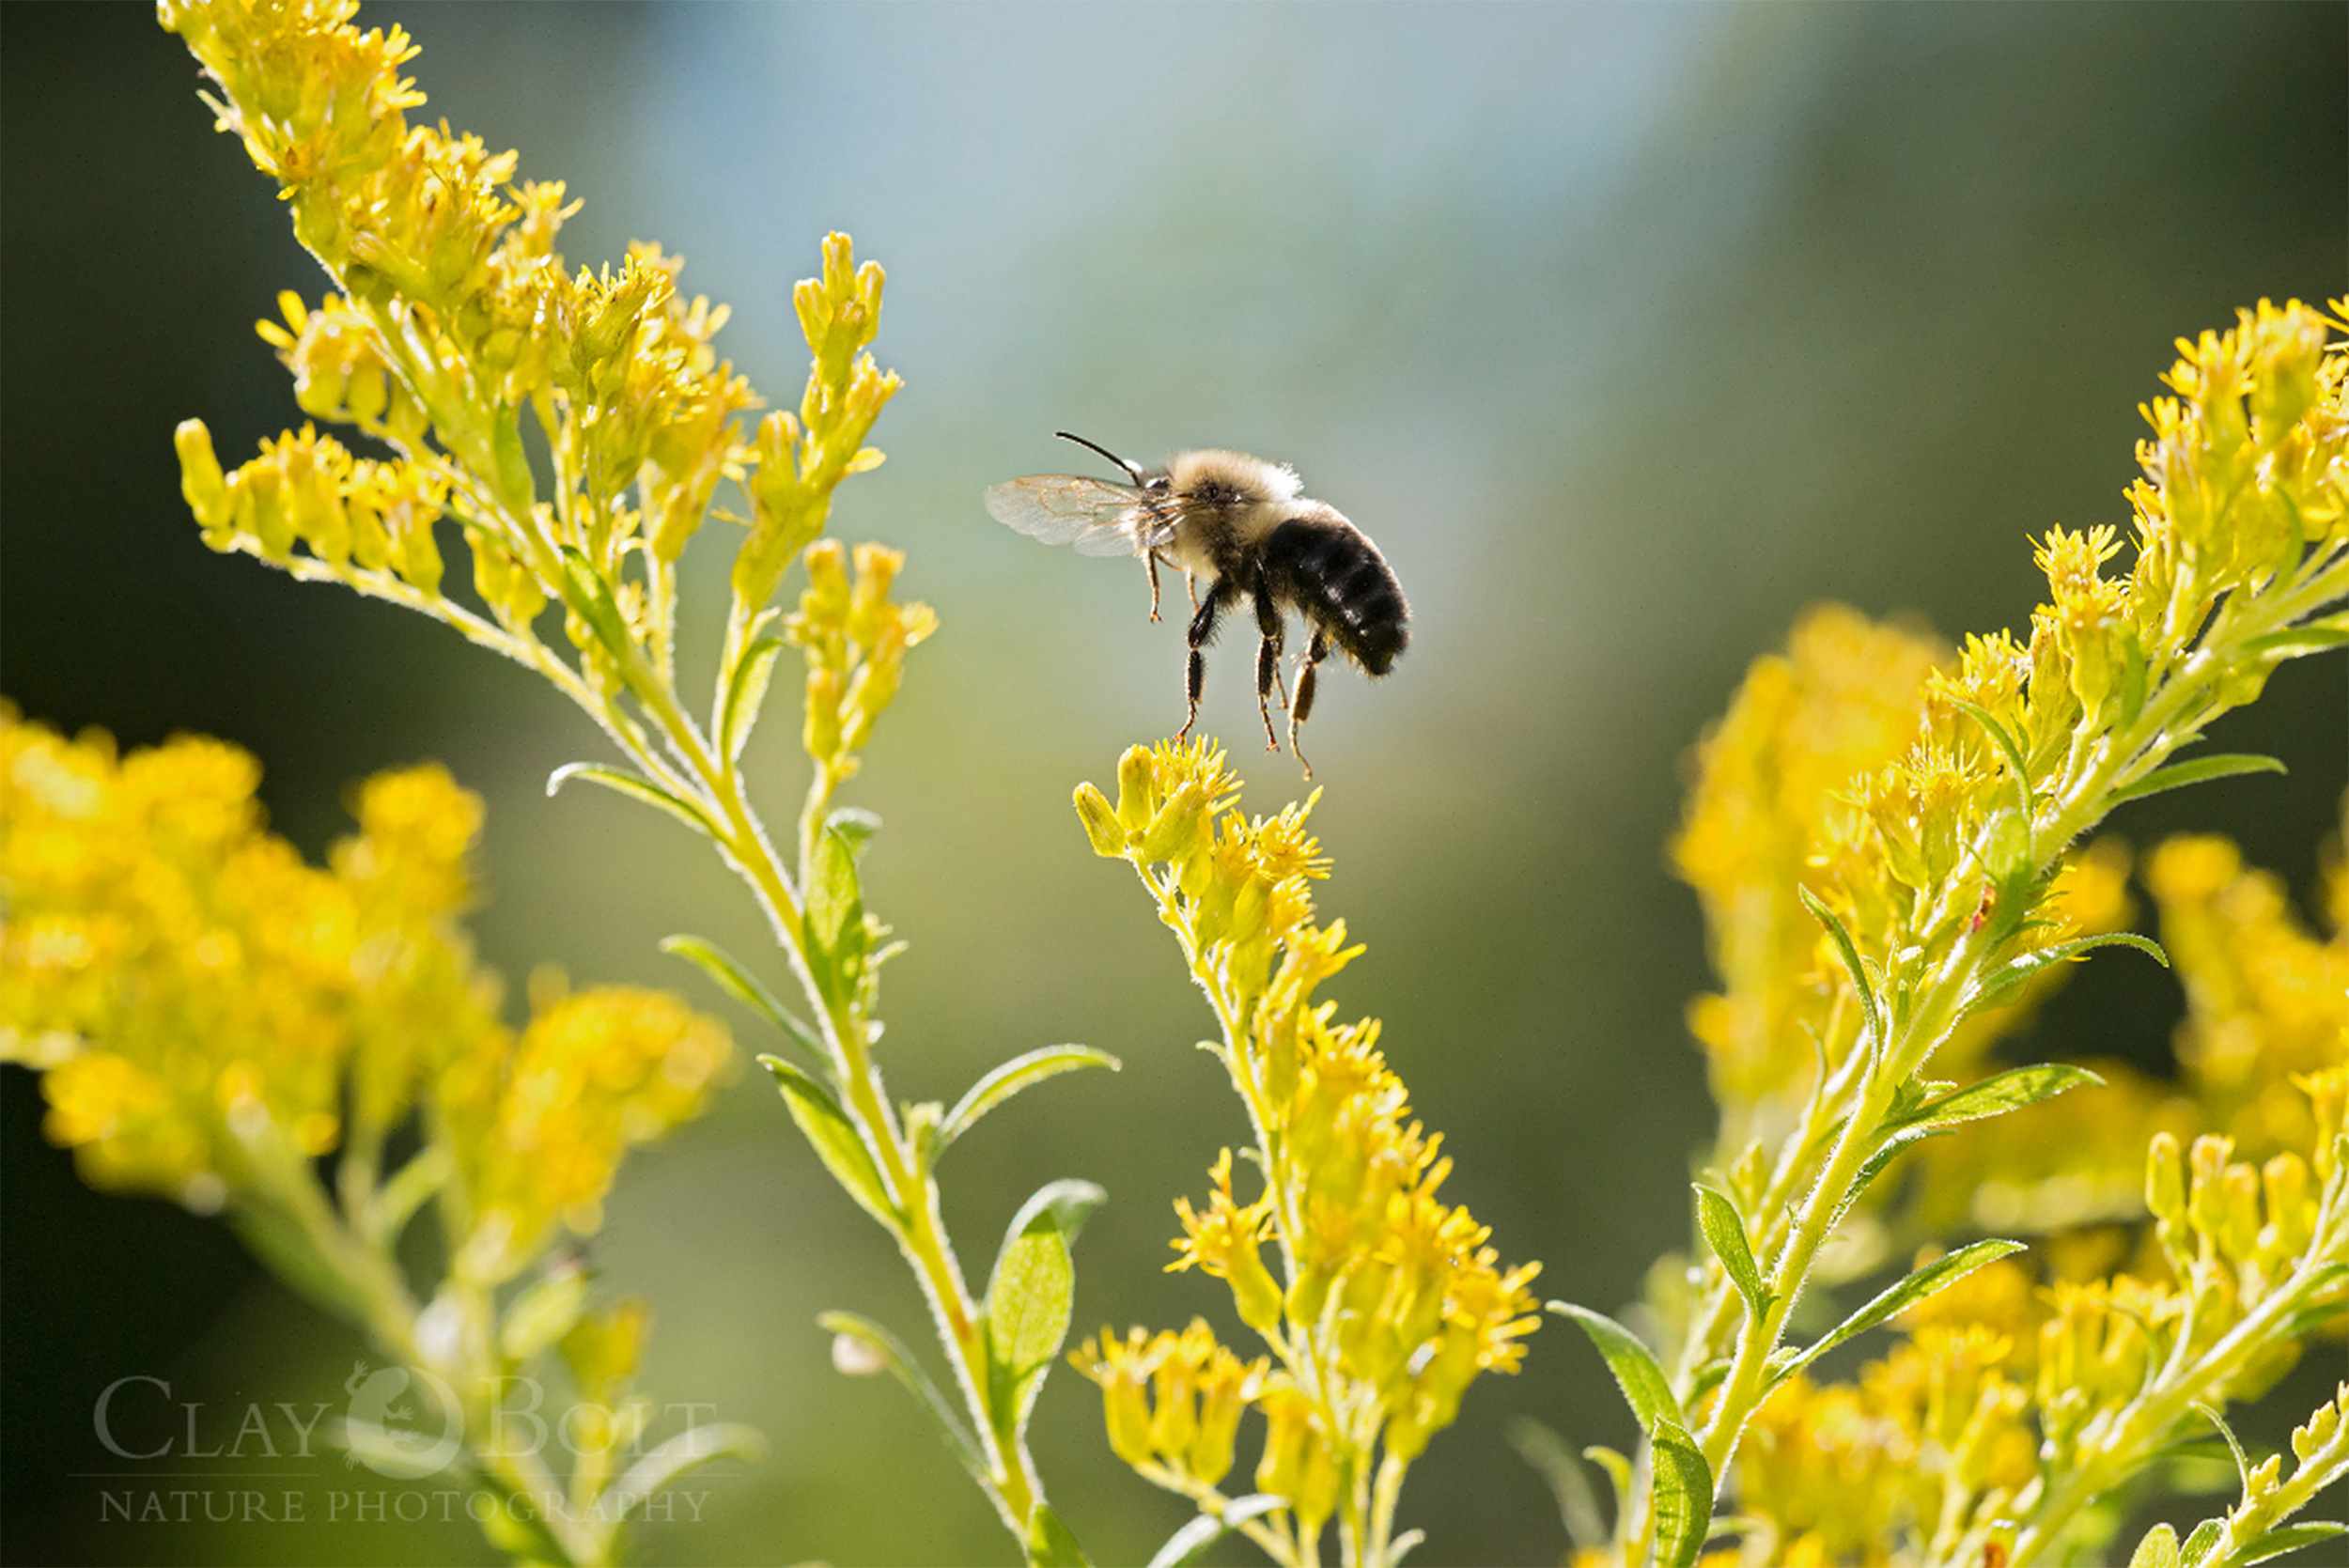 A common eastern bumble bee ( Bombus impatiens ) takes flight from a goldenrod in autumn, University of Wisconsin-Madison Arboretum